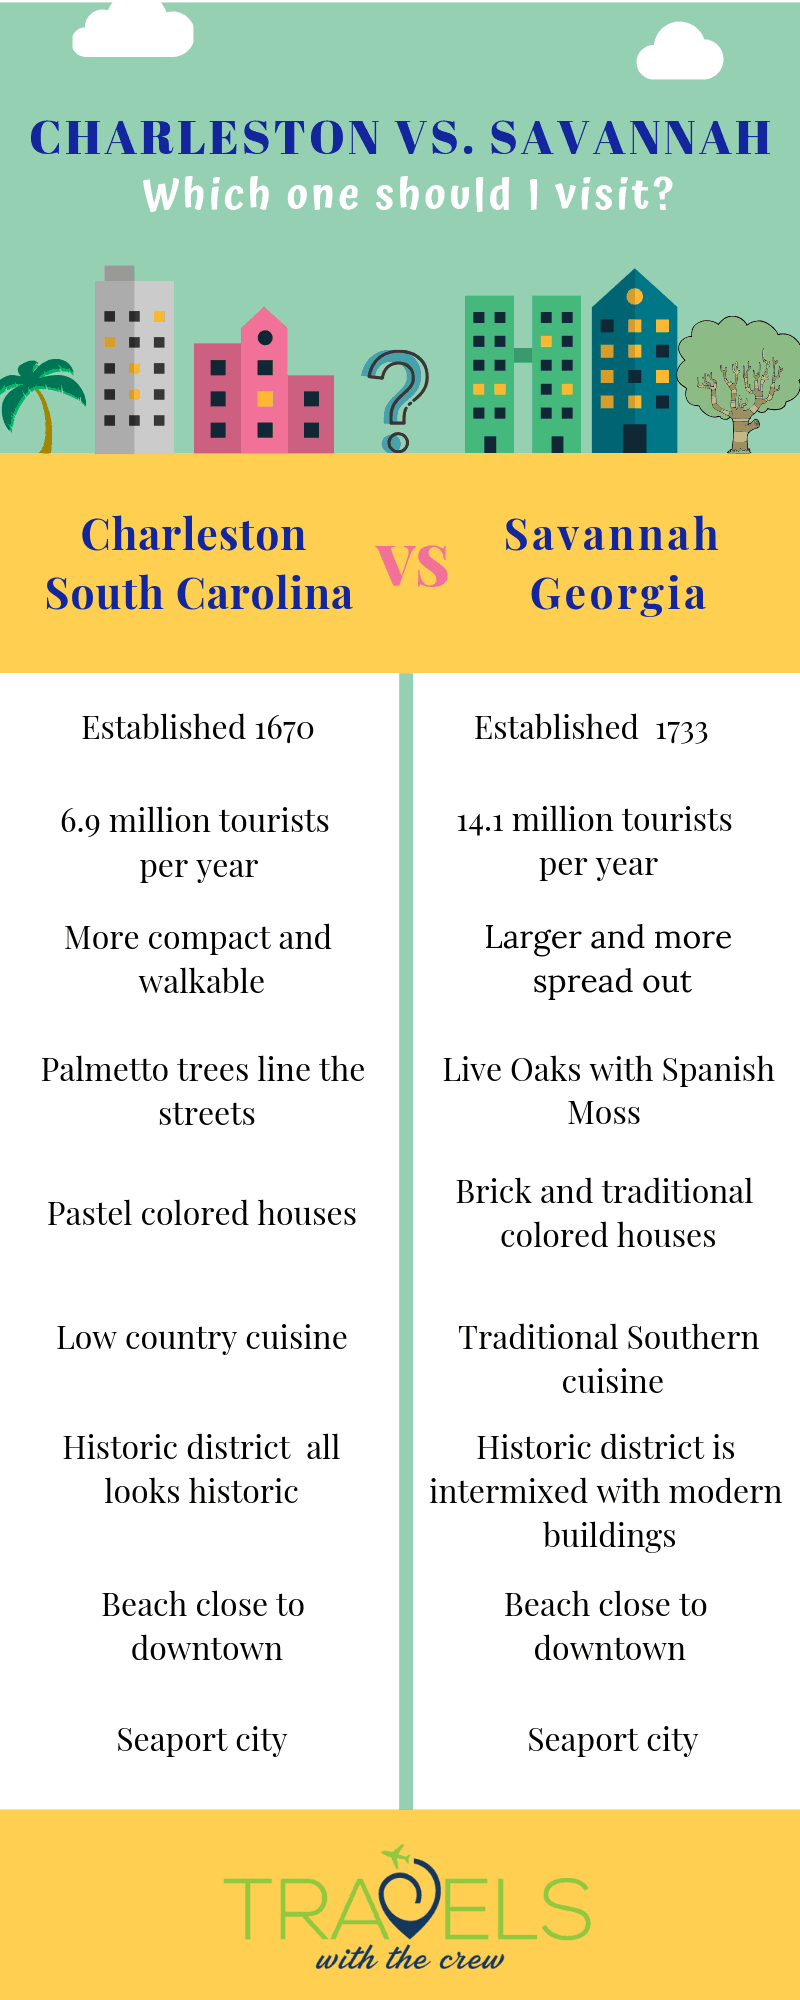 Trying to decide between visiting Charleston or Savannah? My comprehensive guide can help you make your decision. #charleston #savannah